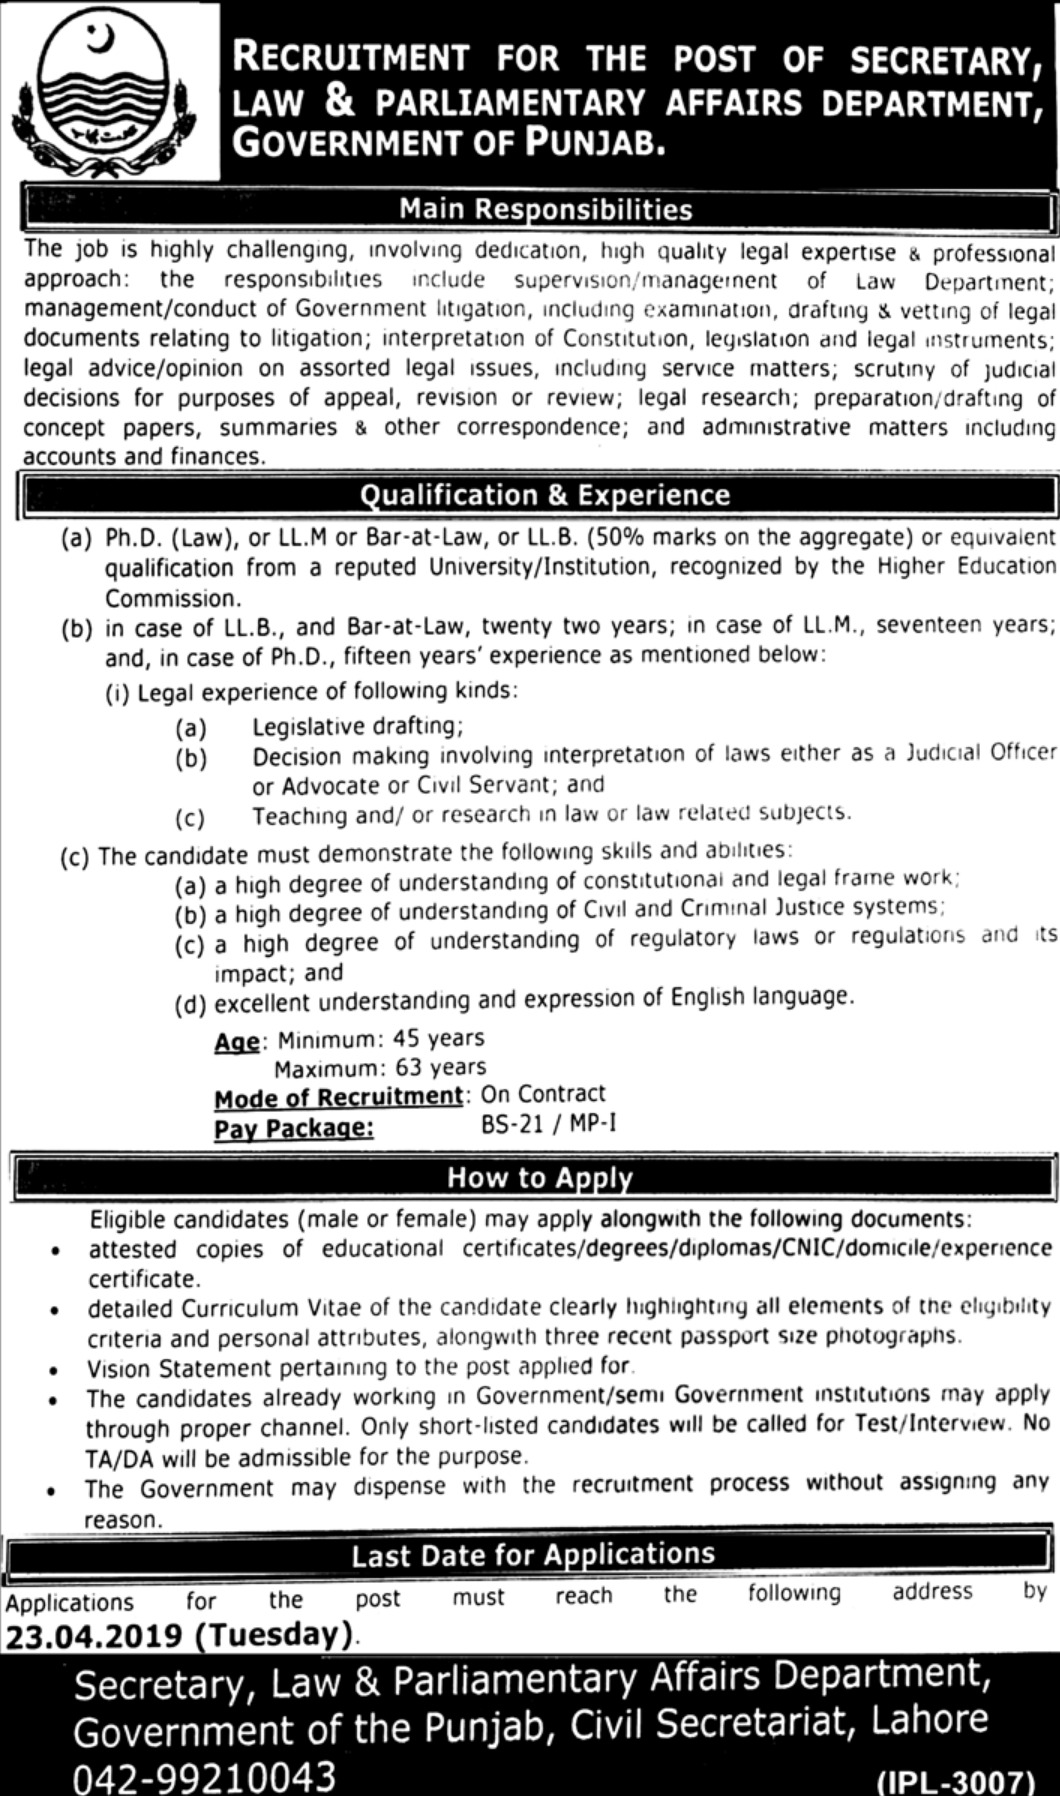 Law & Parliamentary Affairs Department Jobs 2019 Government of Punjab Latest